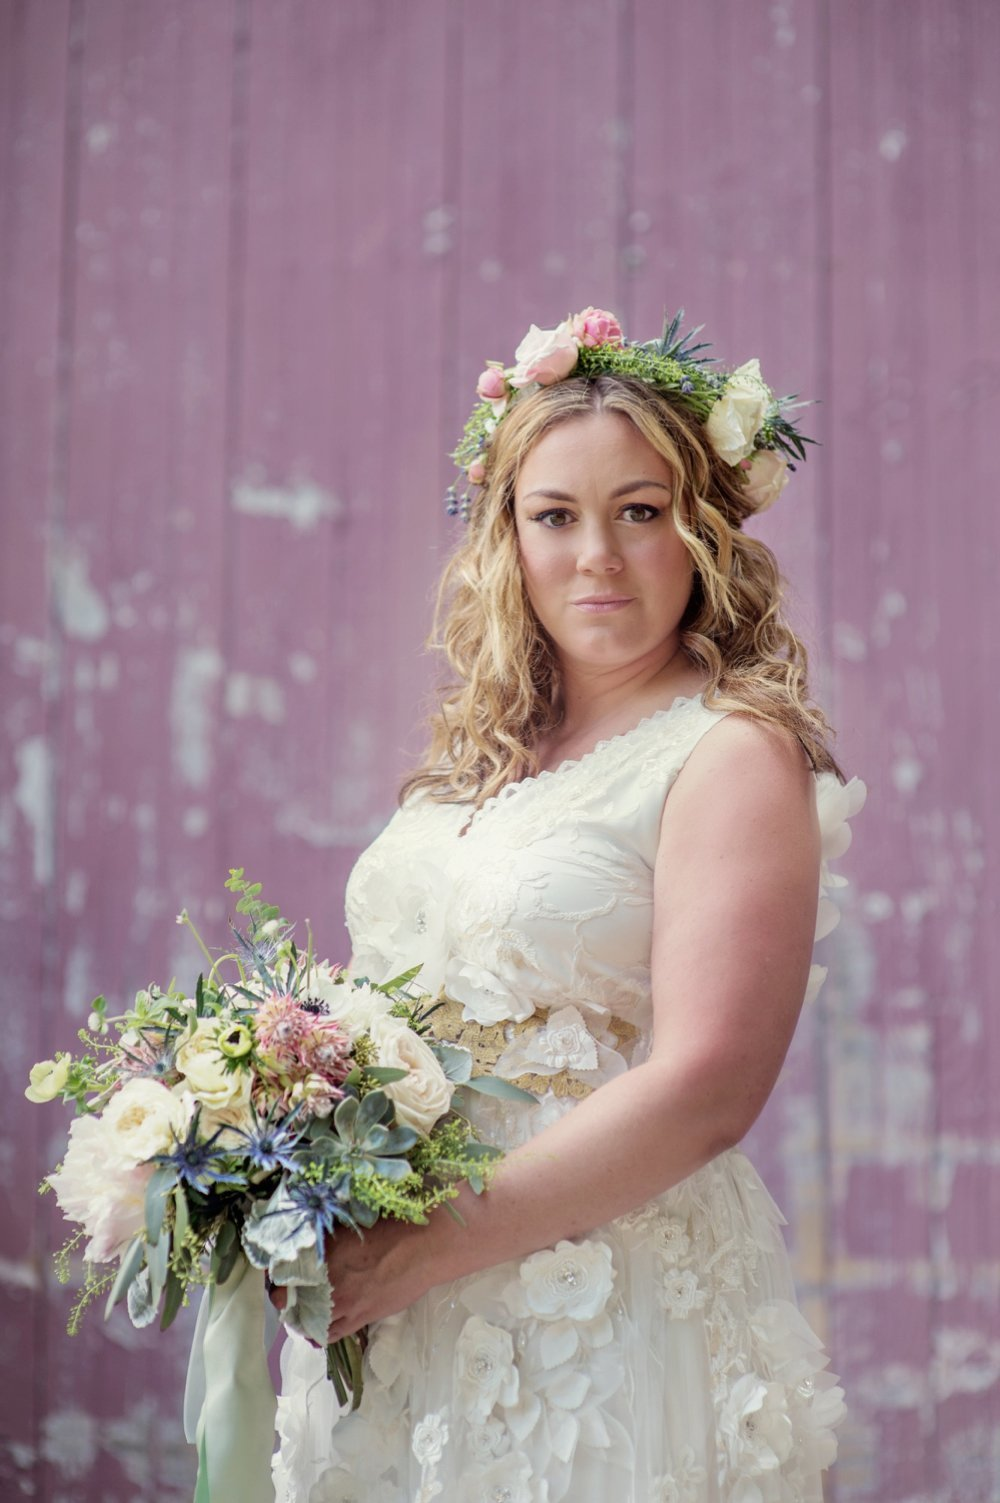 Gorgeous bride with floral crown in a Claire Pettibone gown with rustic bouquet